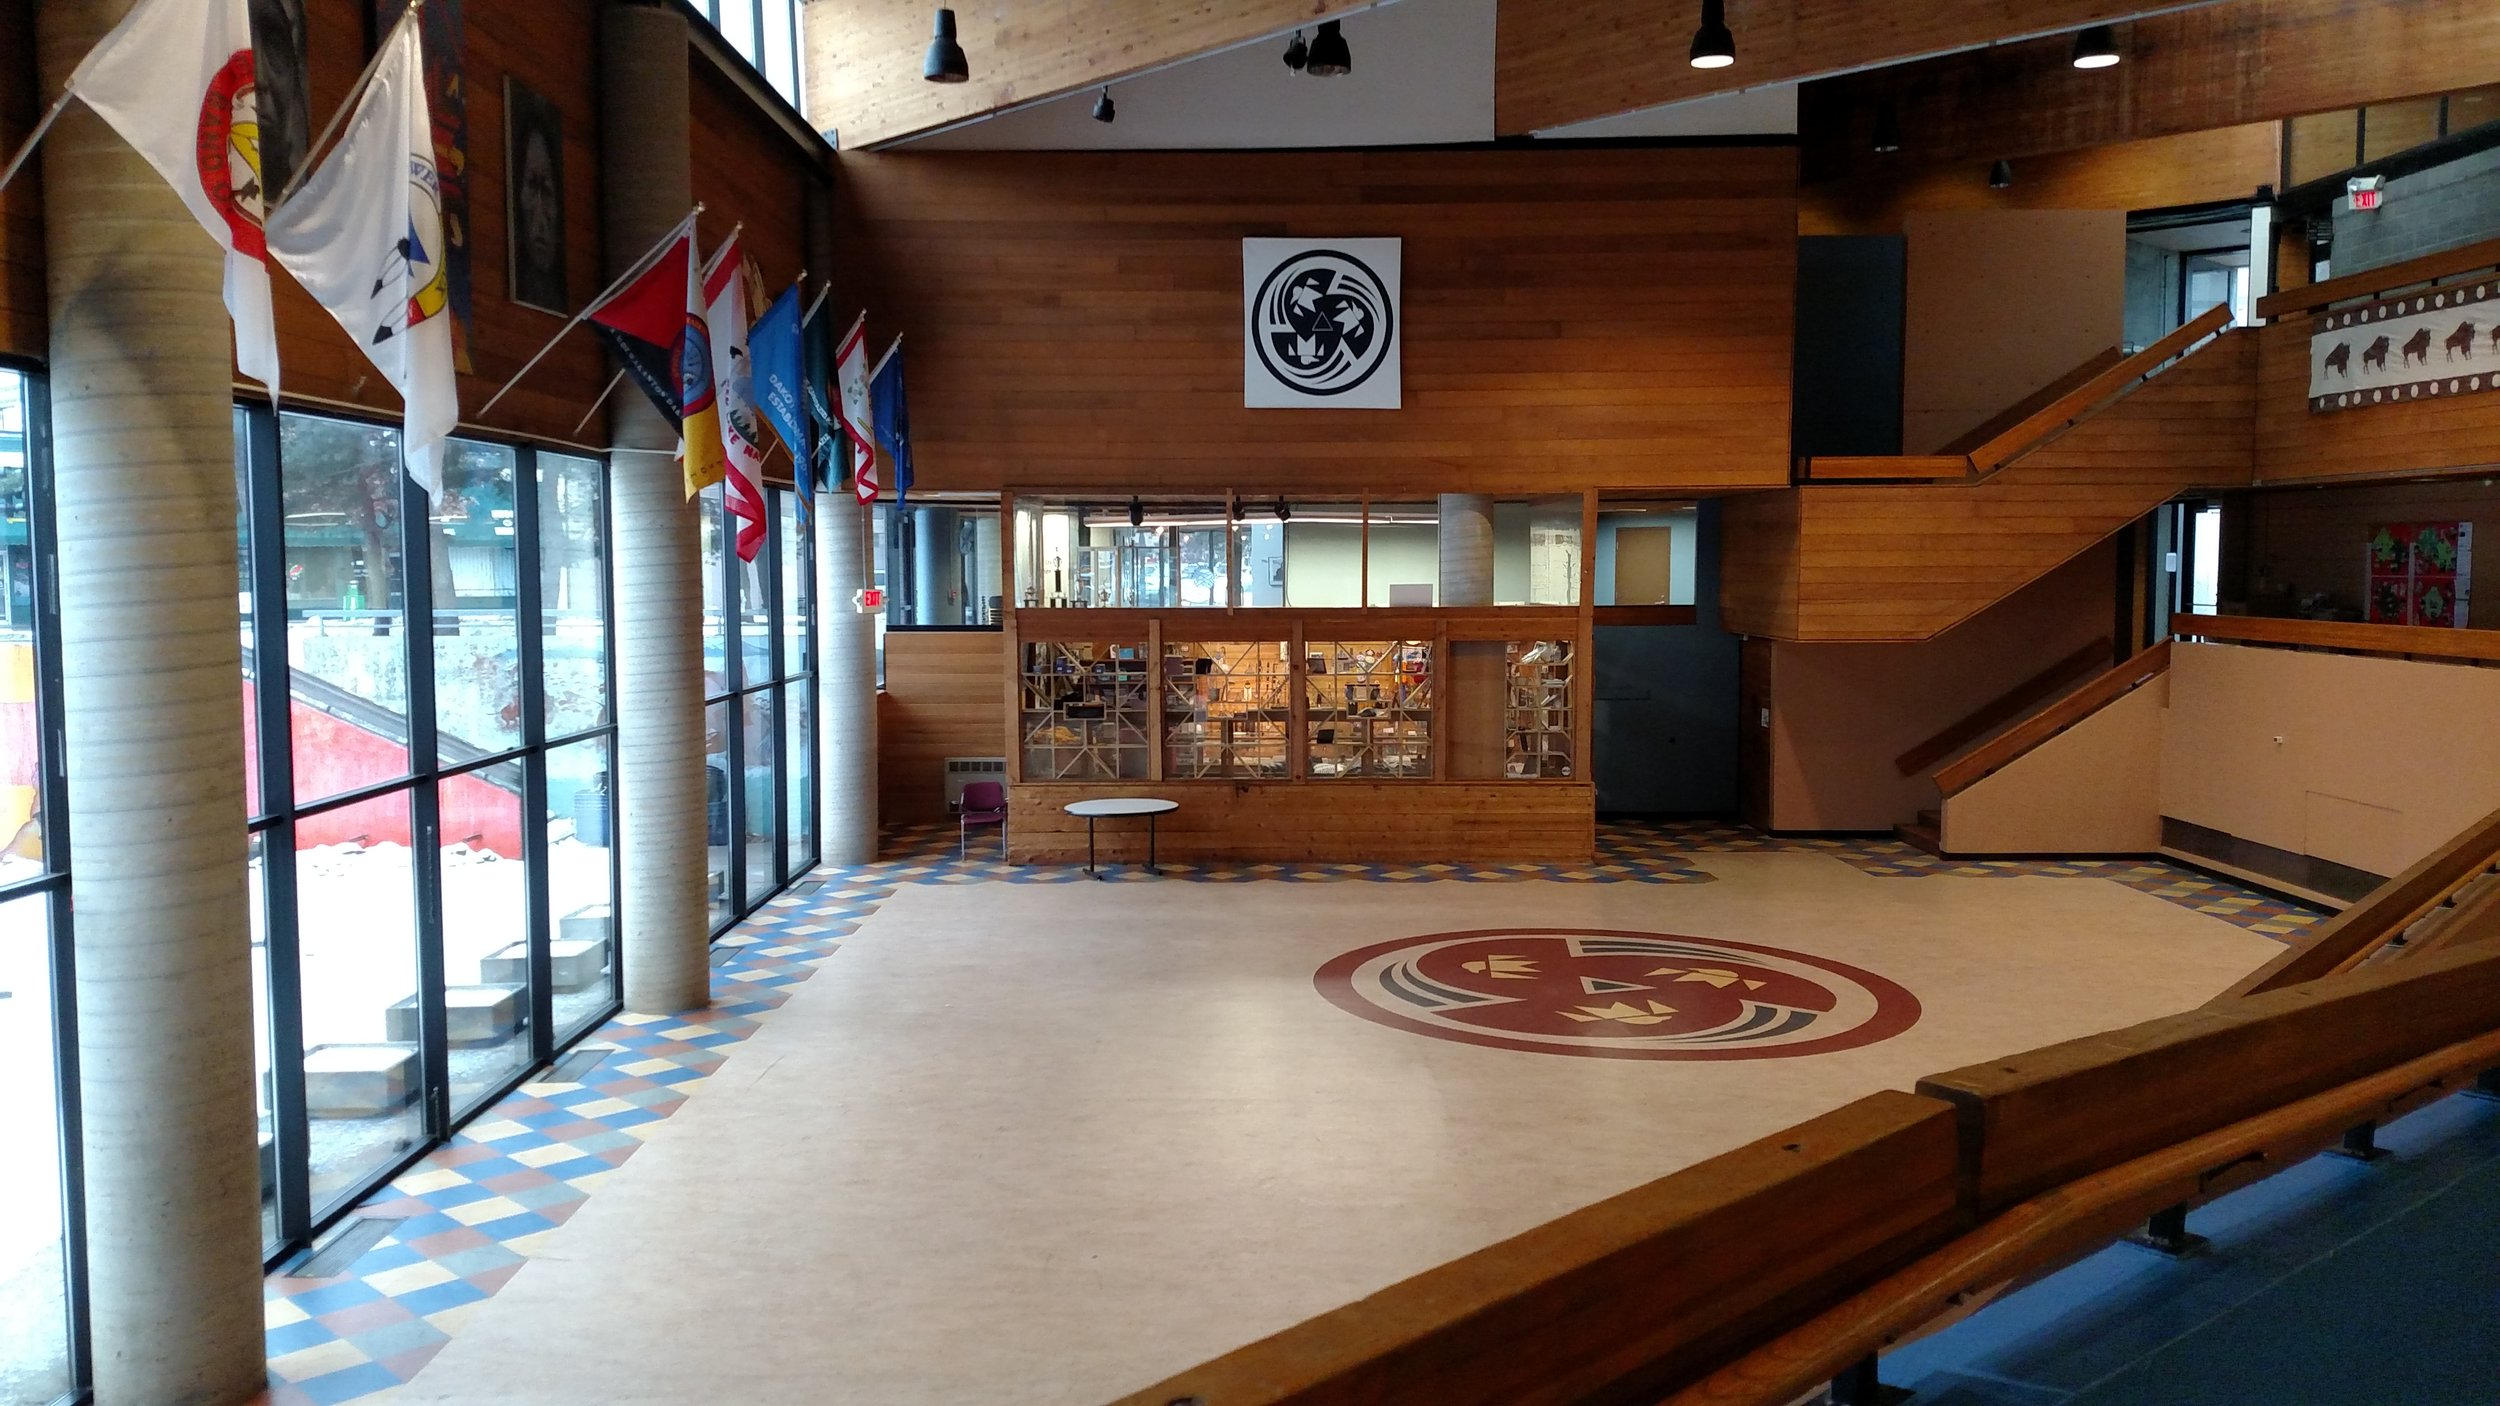 Minneapolis American Indian Center - Founded in 1975, this center is one of the oldest American Indian centers in the country. Check out the Two Rivers Art Gallery, the Gatherings Café offering healthy Indigenous foods, and Dakota and Ojibwe language activities for all ages. Learn more about the Center's upcoming renovation and expansion plan.